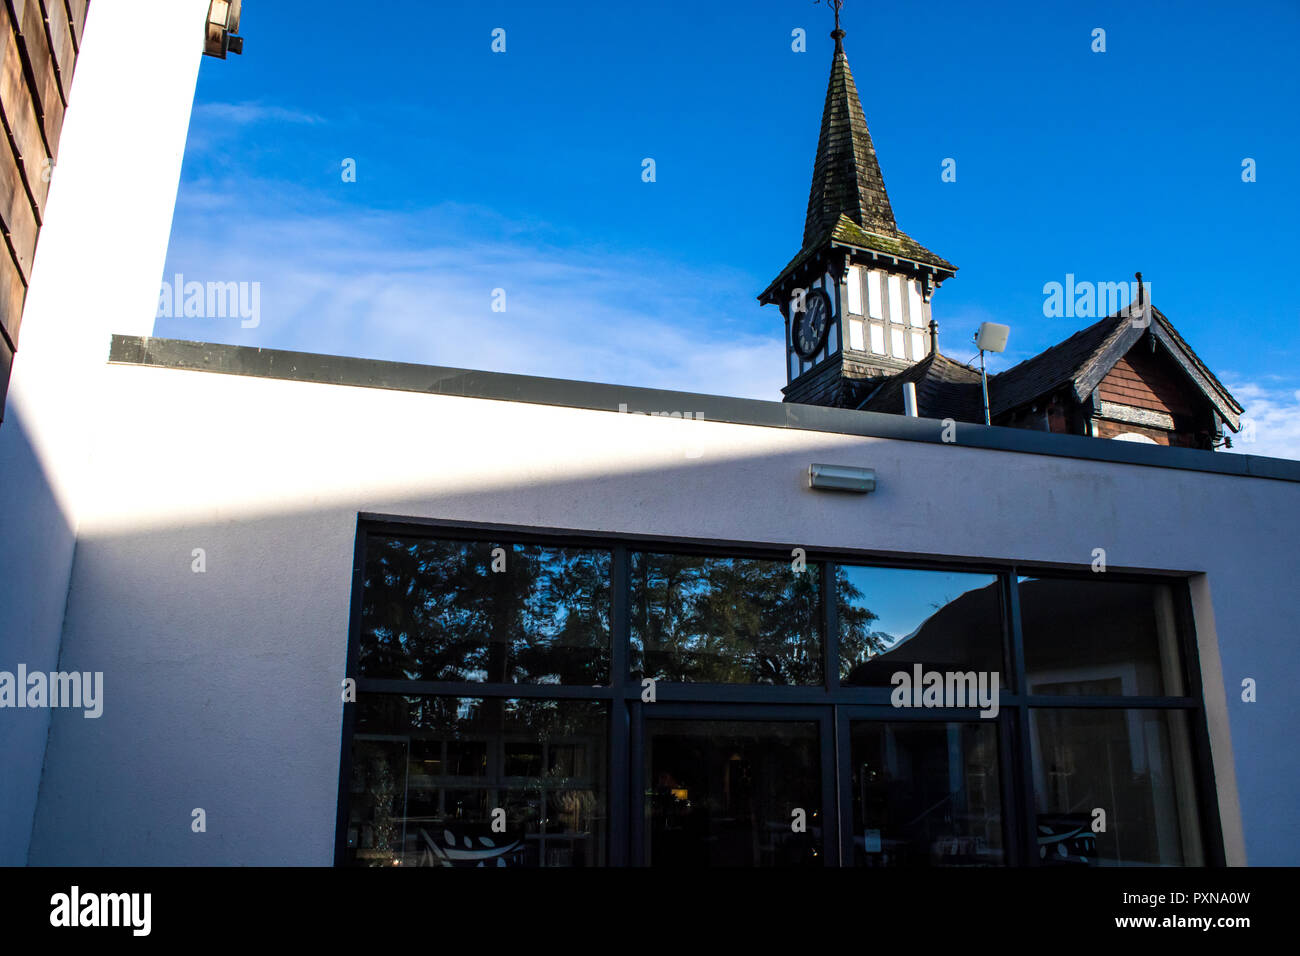 Clock tower and extension at Alvaston Hall, Nantwich, Cheshire, UK - Stock Image